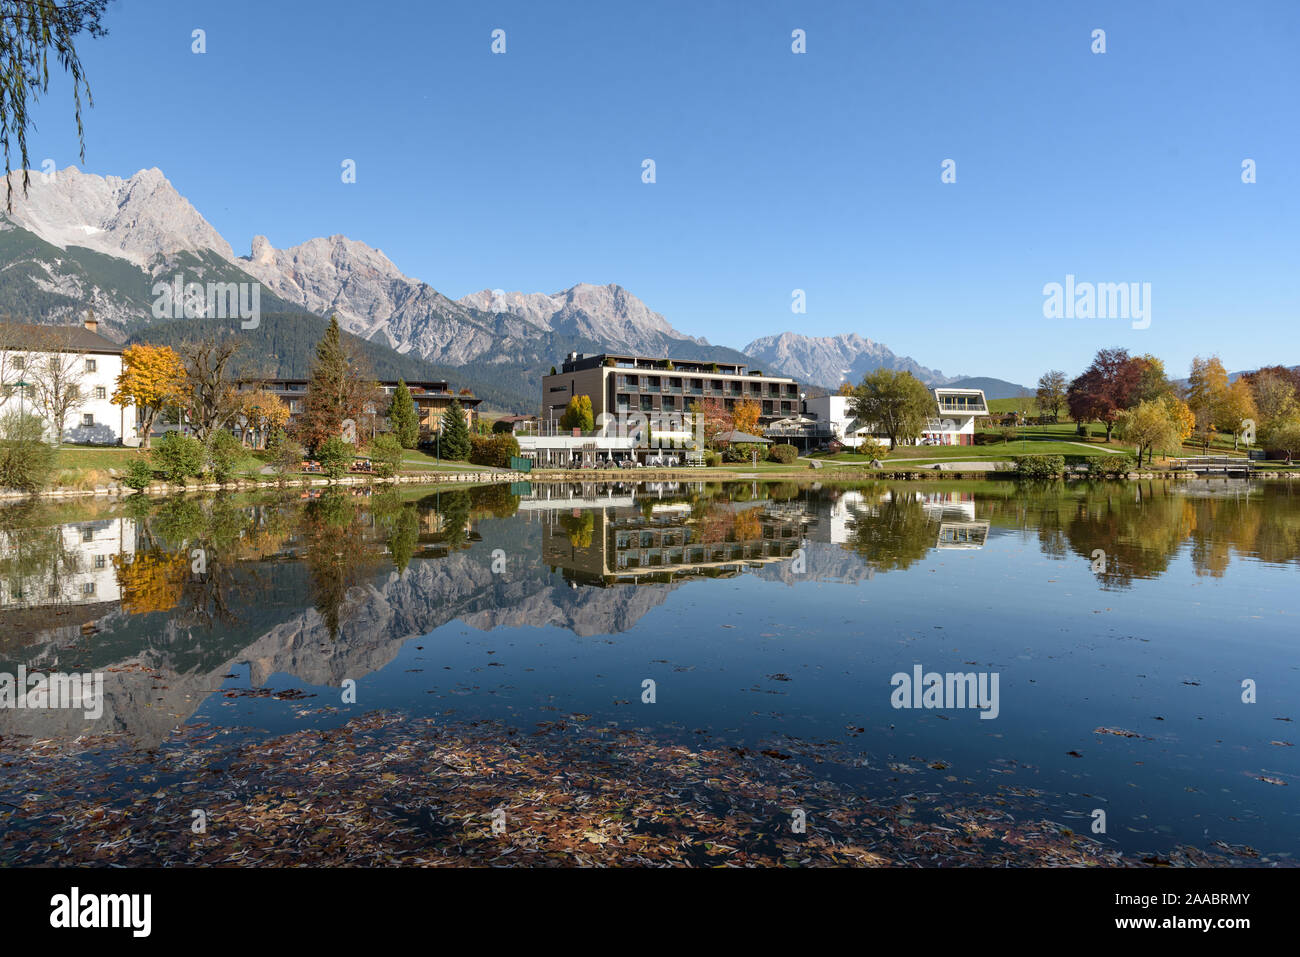 Ritzensee, Saalfelden, Salzburg/Austria, October 26, 2019: View of the nature bath at Ritzensee with the peaks of the Steinernes Meer reflecting in th Stock Photo